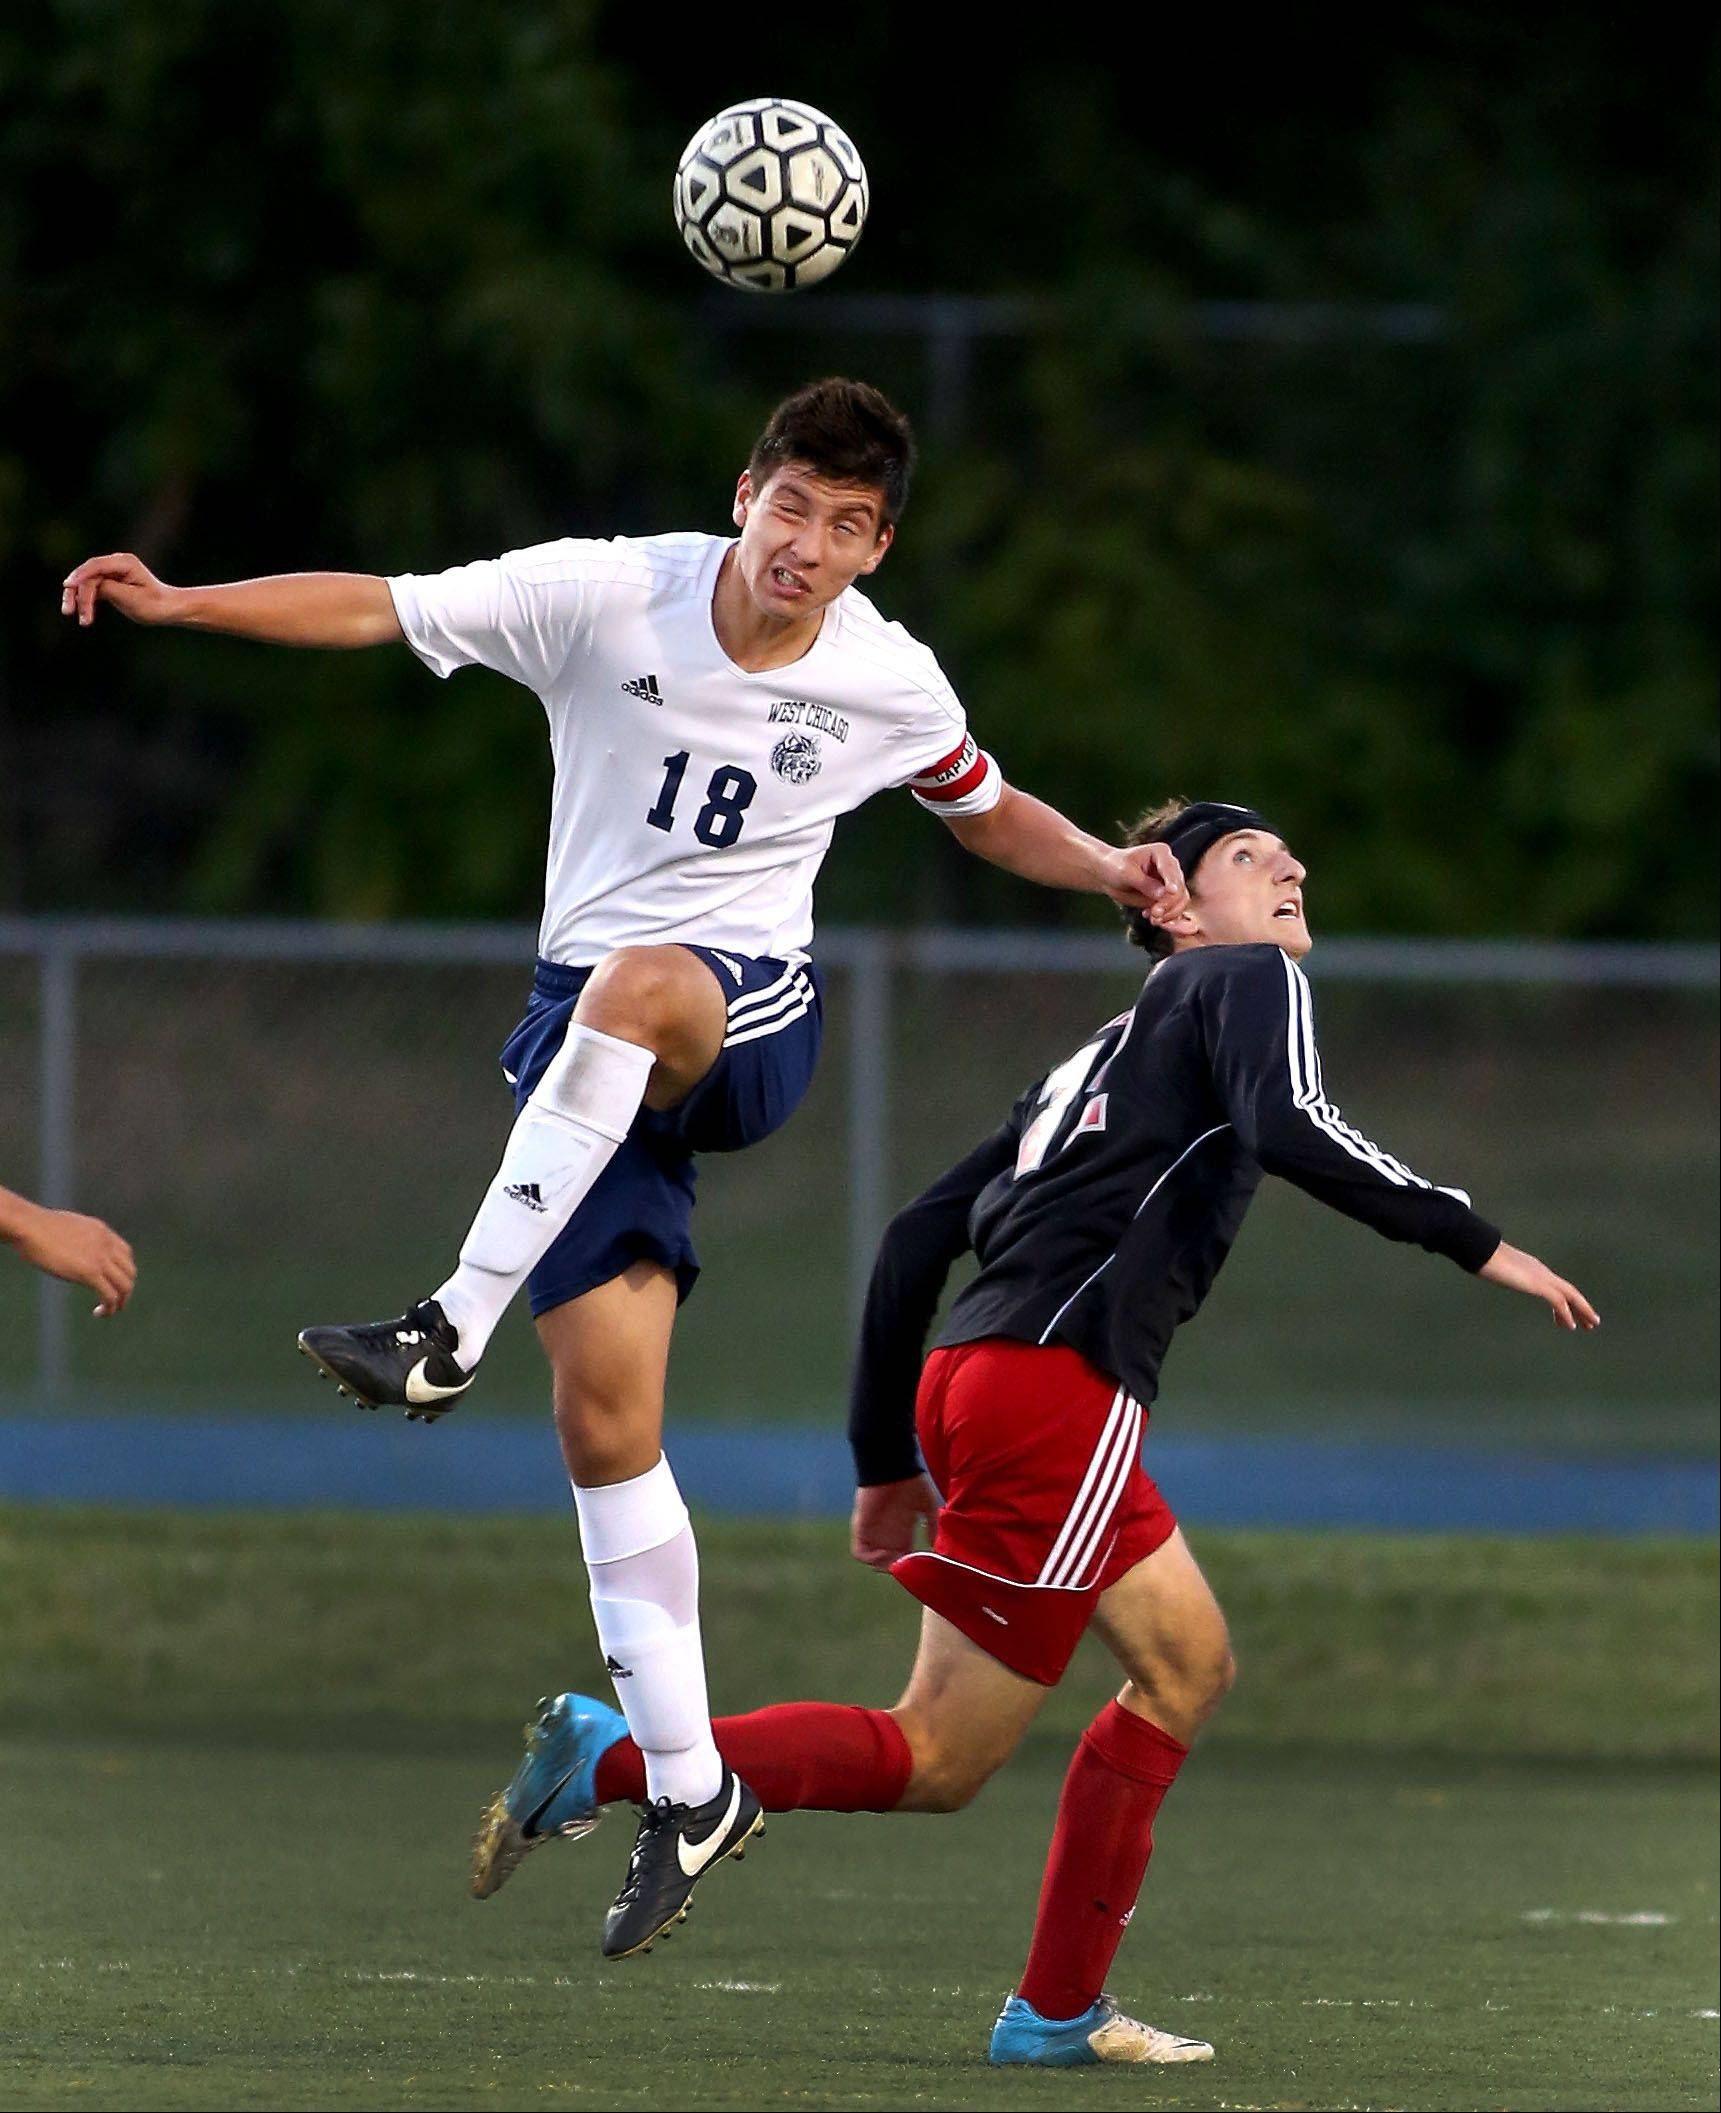 Jesus Fernandez of West Chicago, left, gets to the header before Kyle Kenagy of Benet Academy in boys soccer action on Monday.